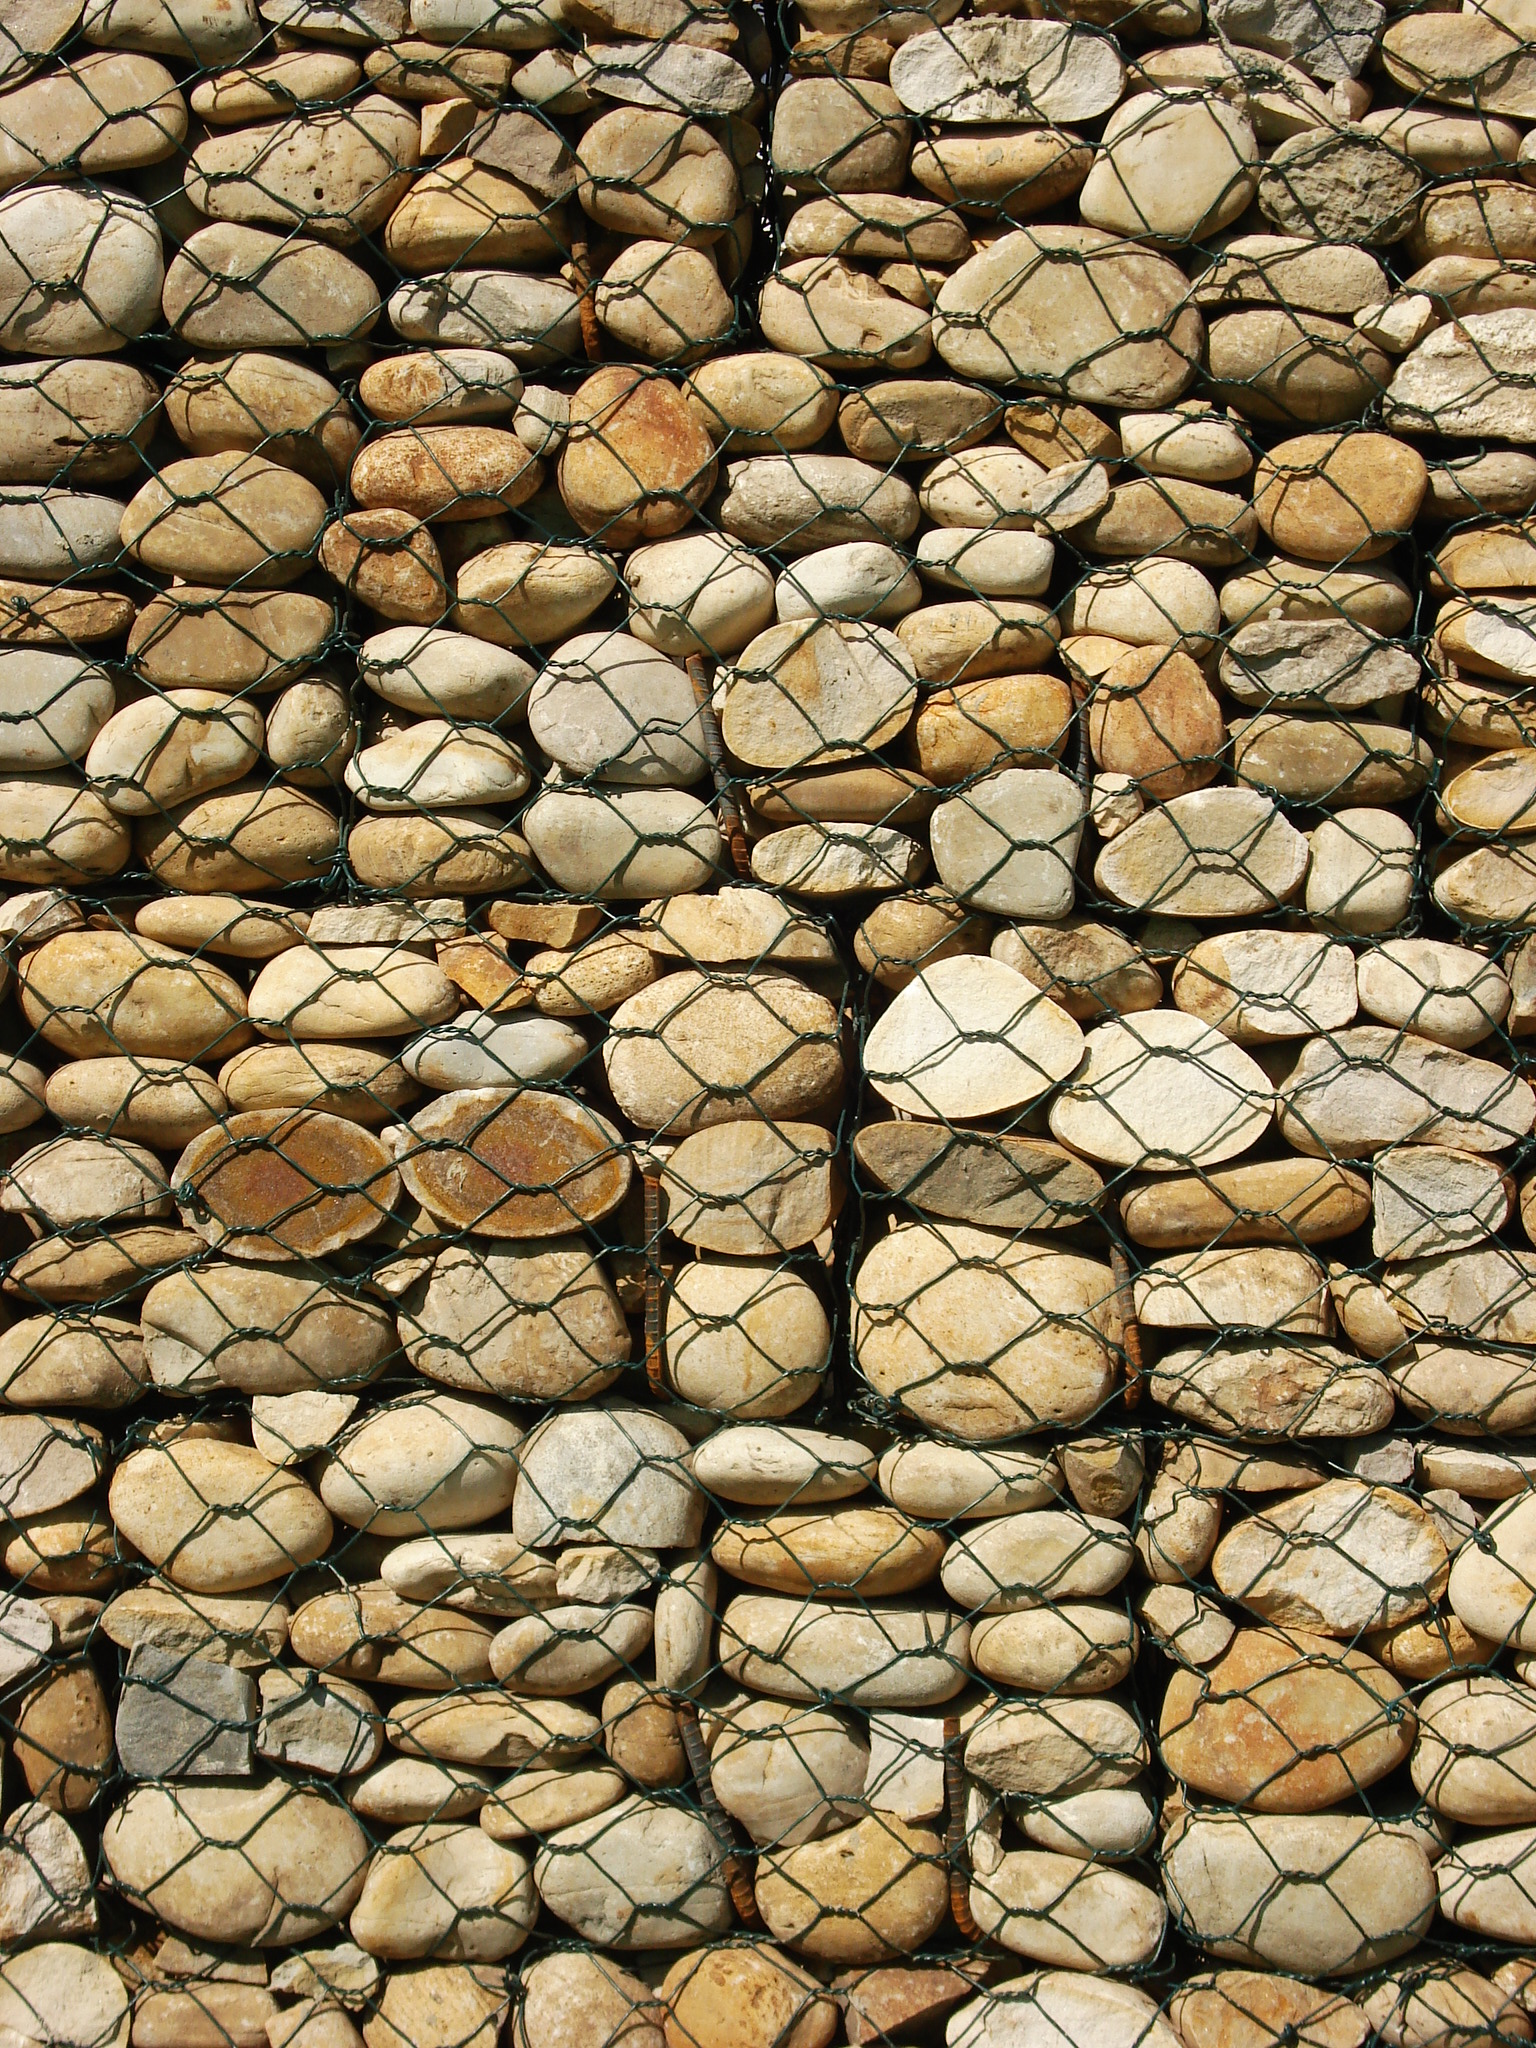 stone_testing with complete rocks.JPG